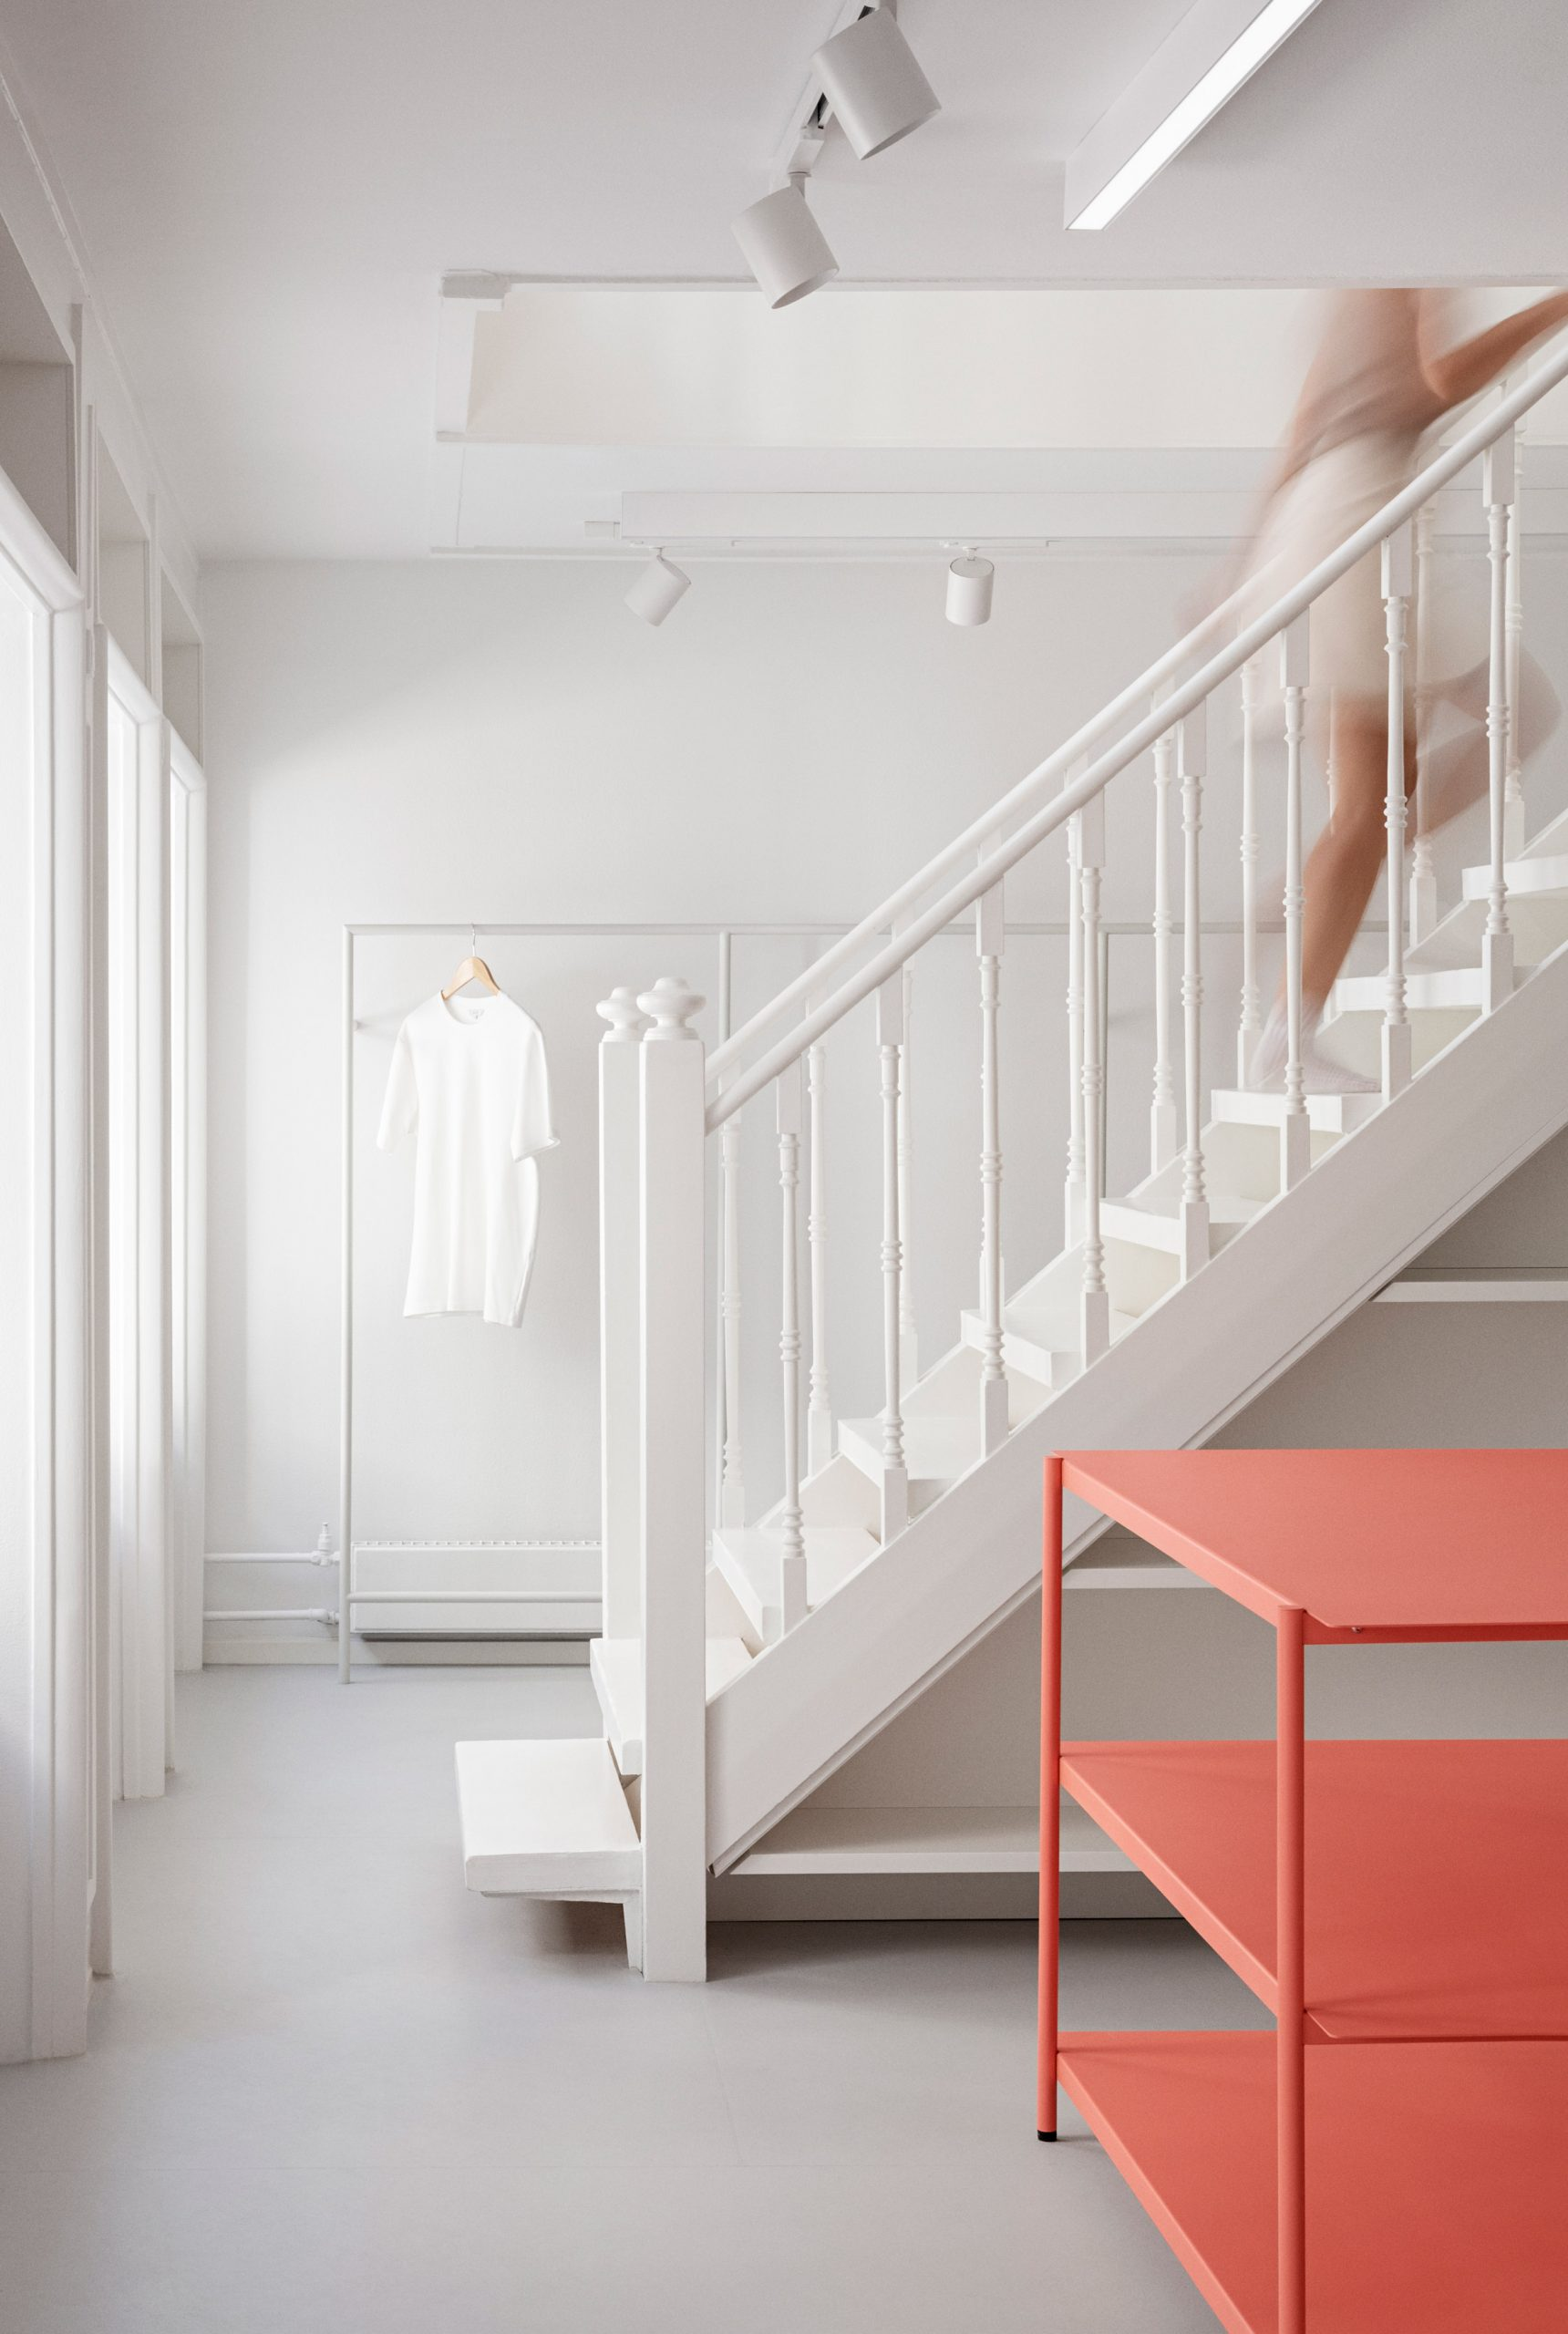 Traditional wooden staircase in the OCE Copenhagen store interior by Aspekt Office